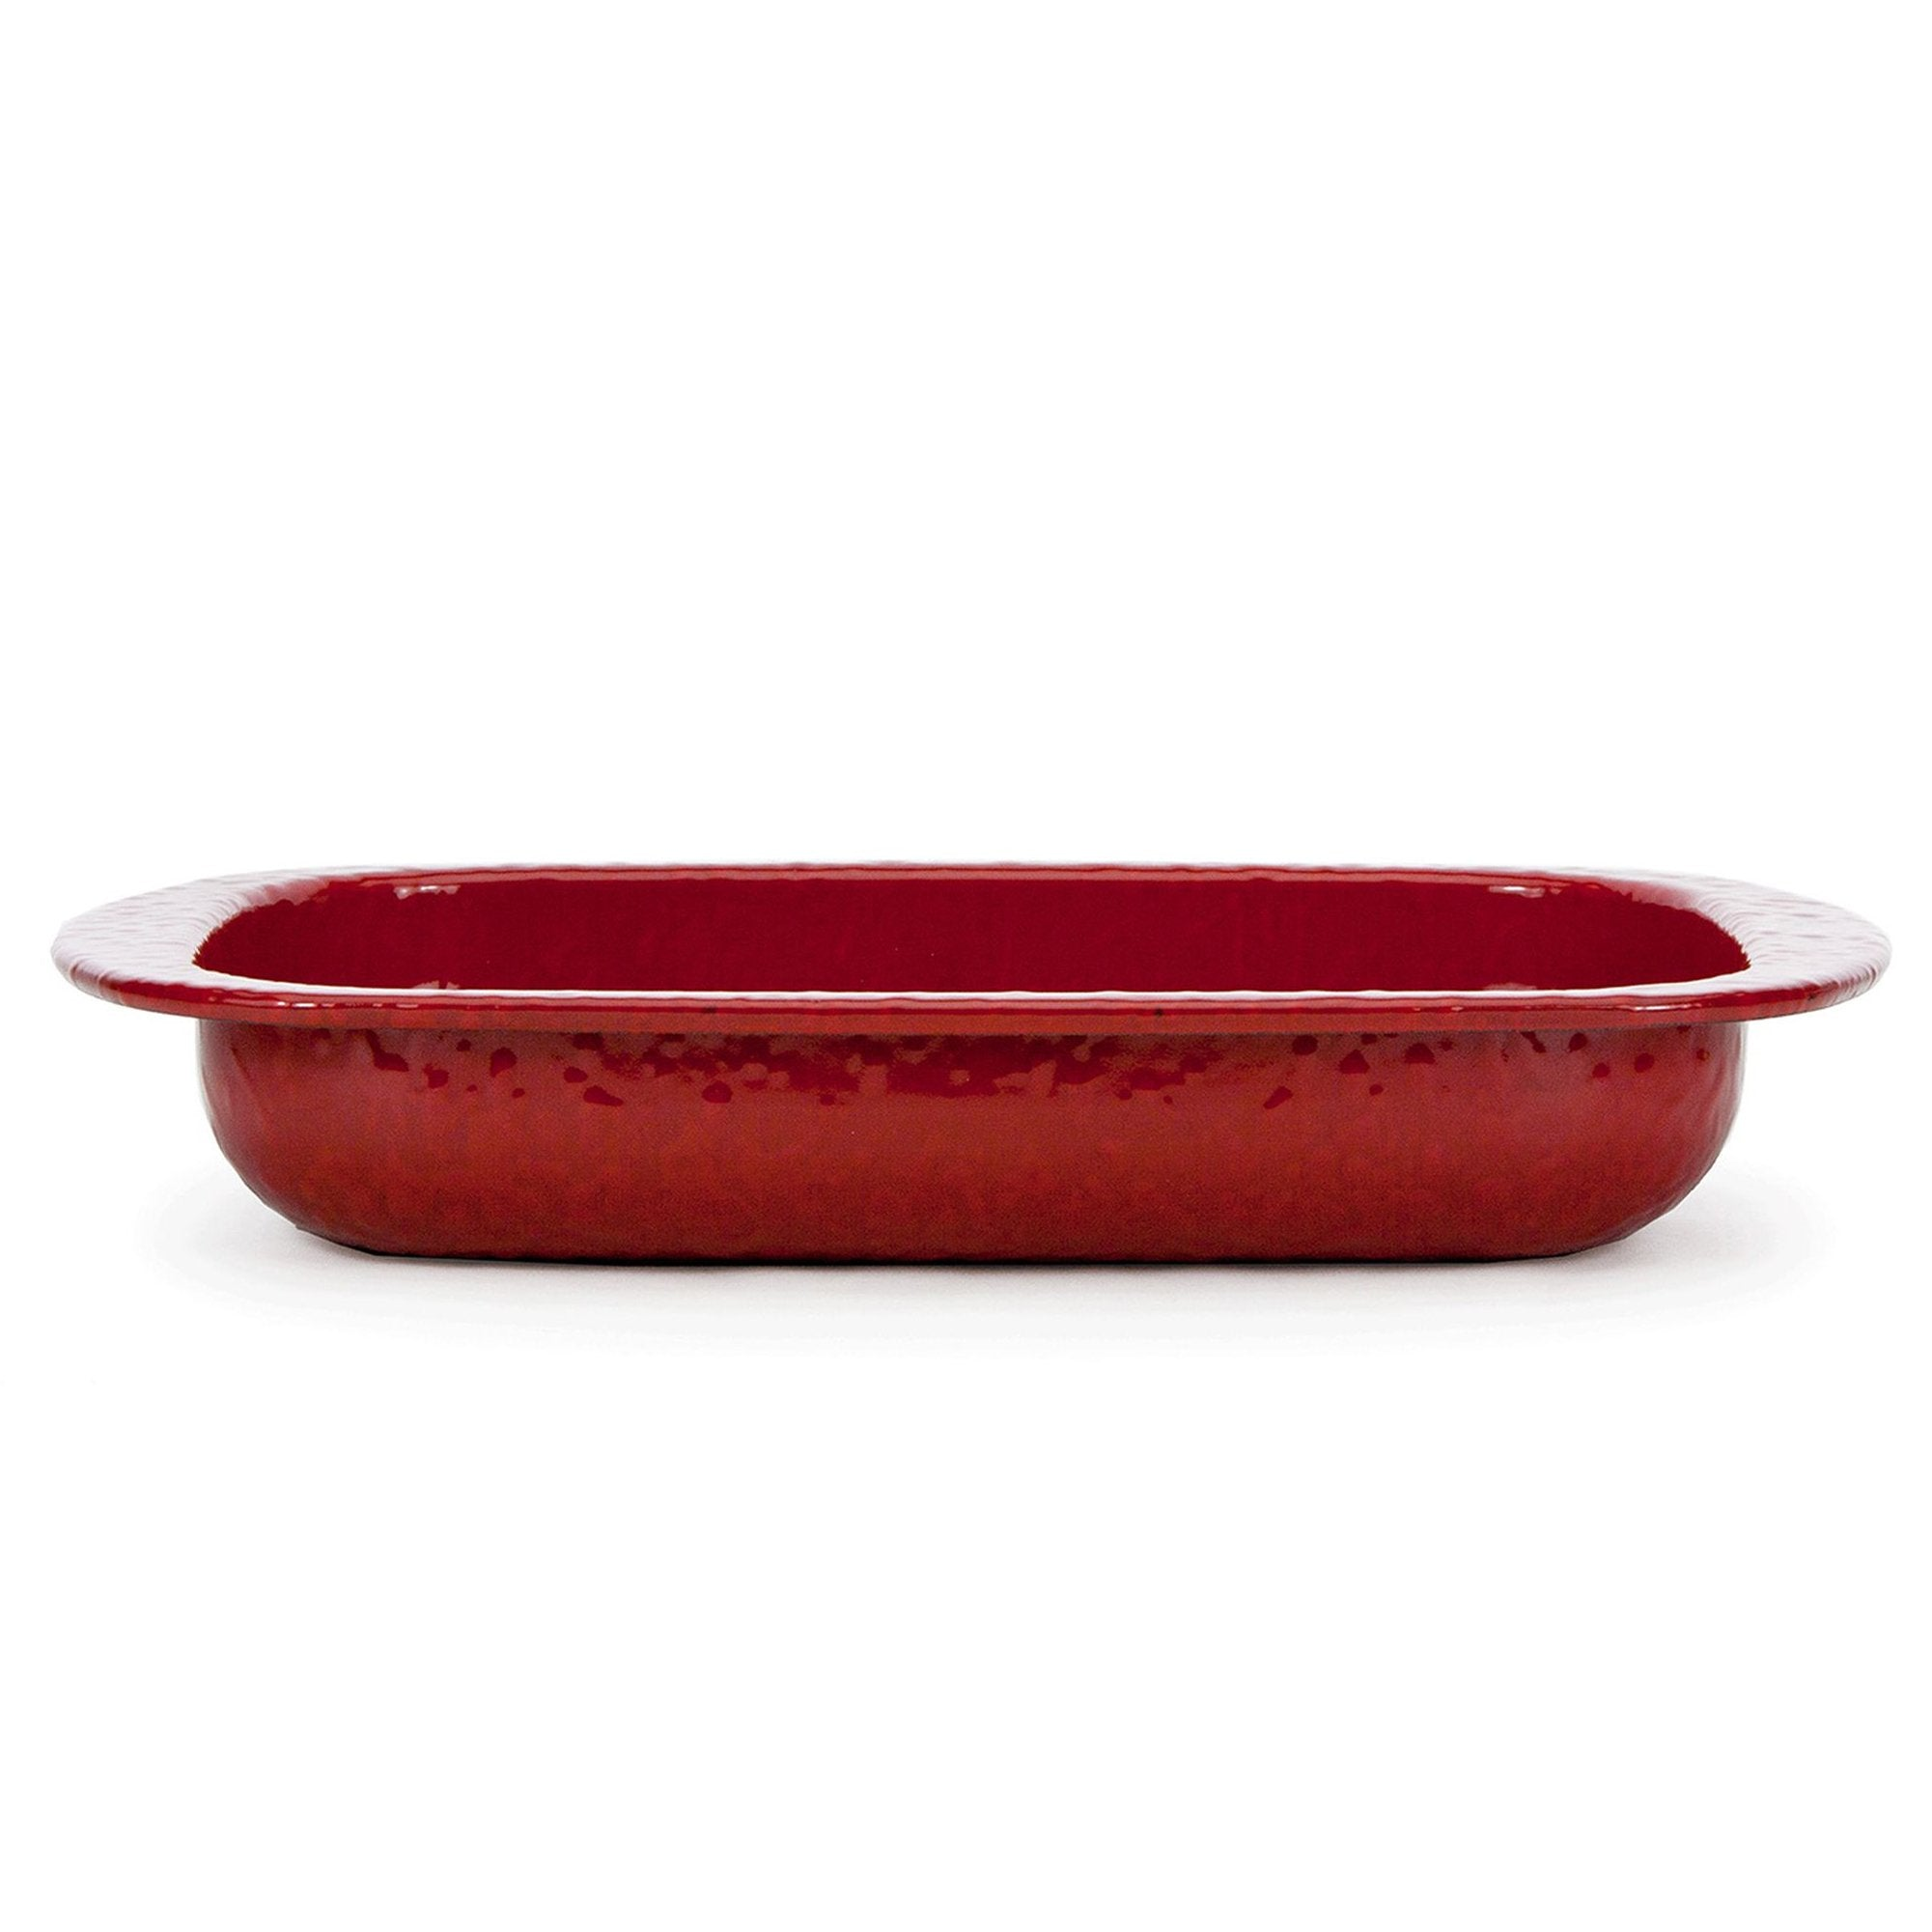 RR78 - Red on Red - 3 Quart Open Baking Pan